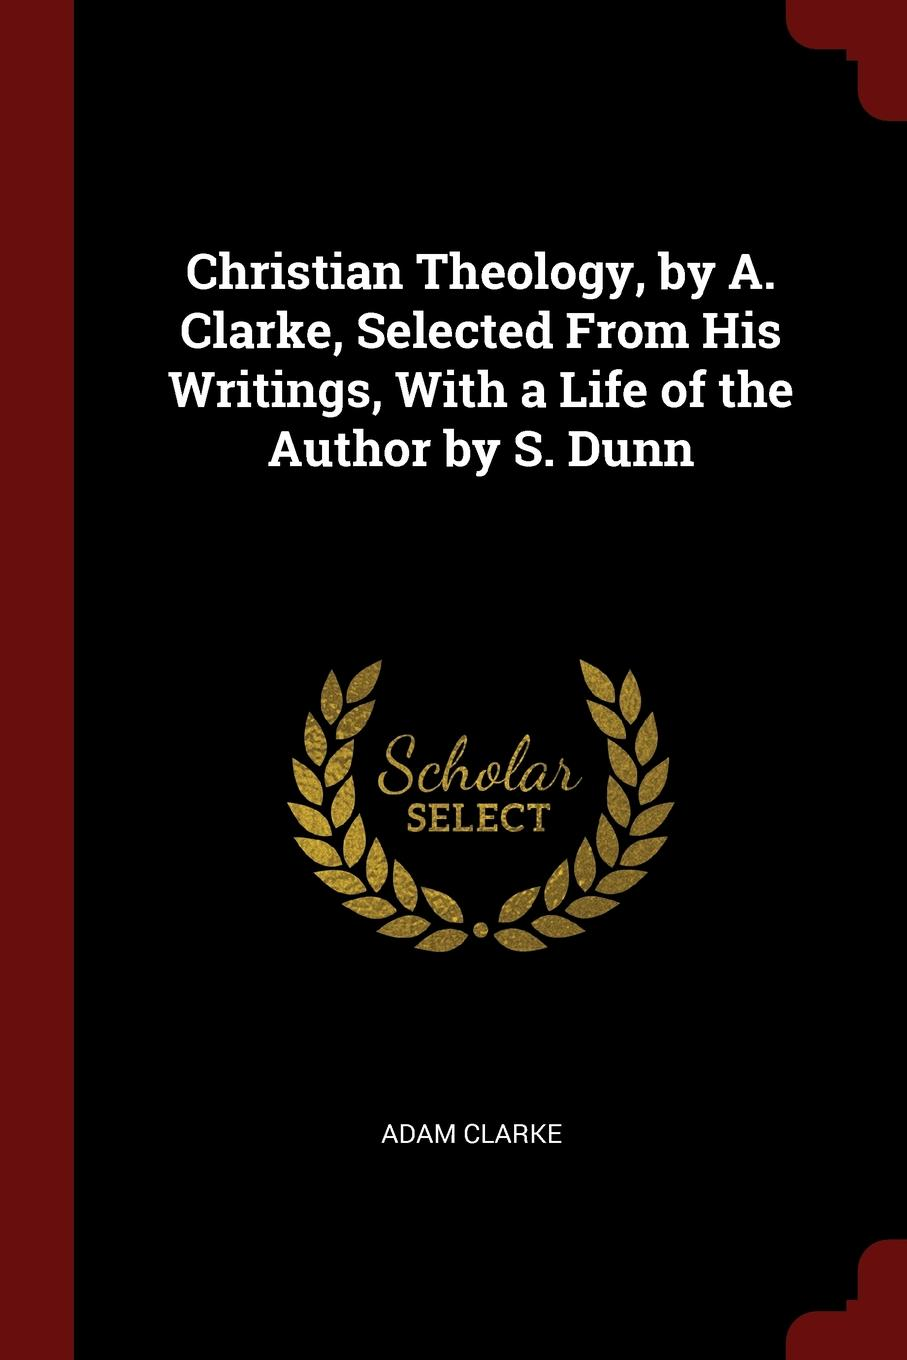 Christian Theology, by A. Clarke, Selected From His Writings, With a Life of the Author by S. Dunn